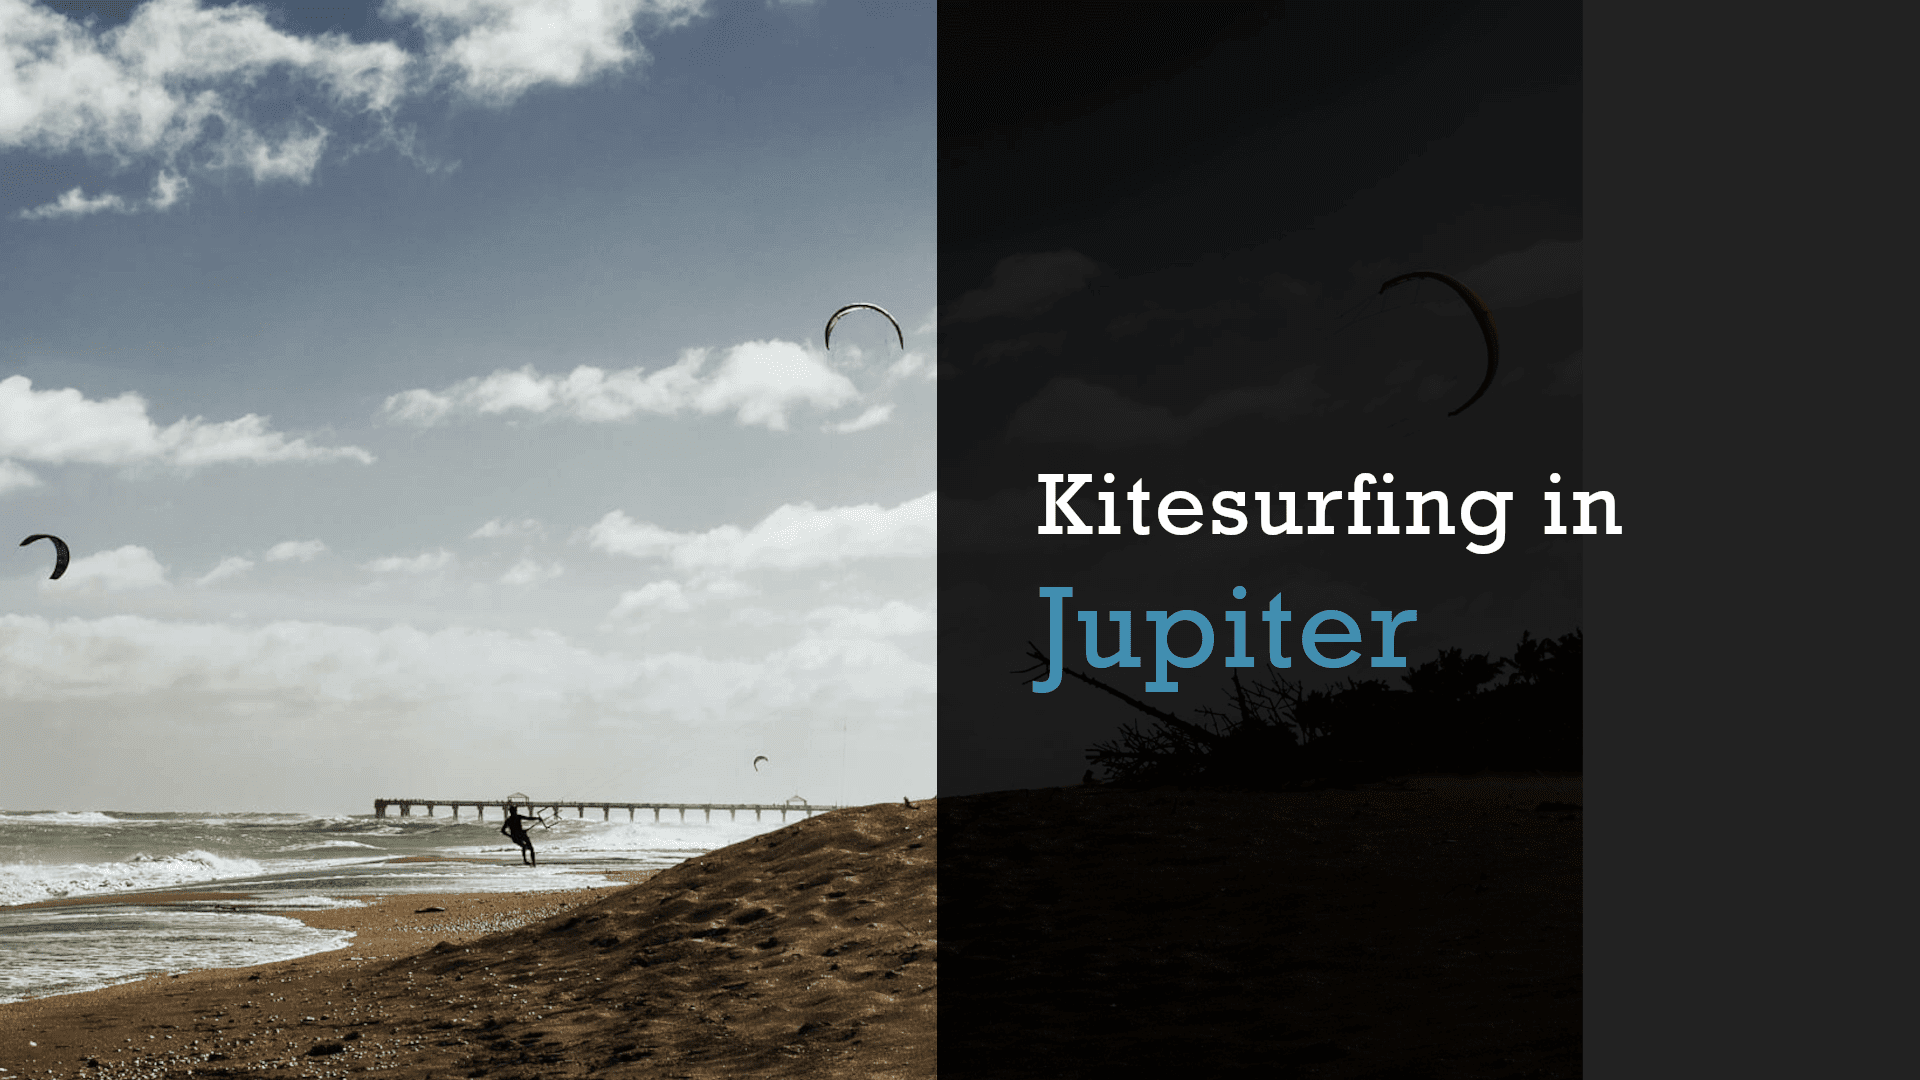 kitesurfing in jupiter